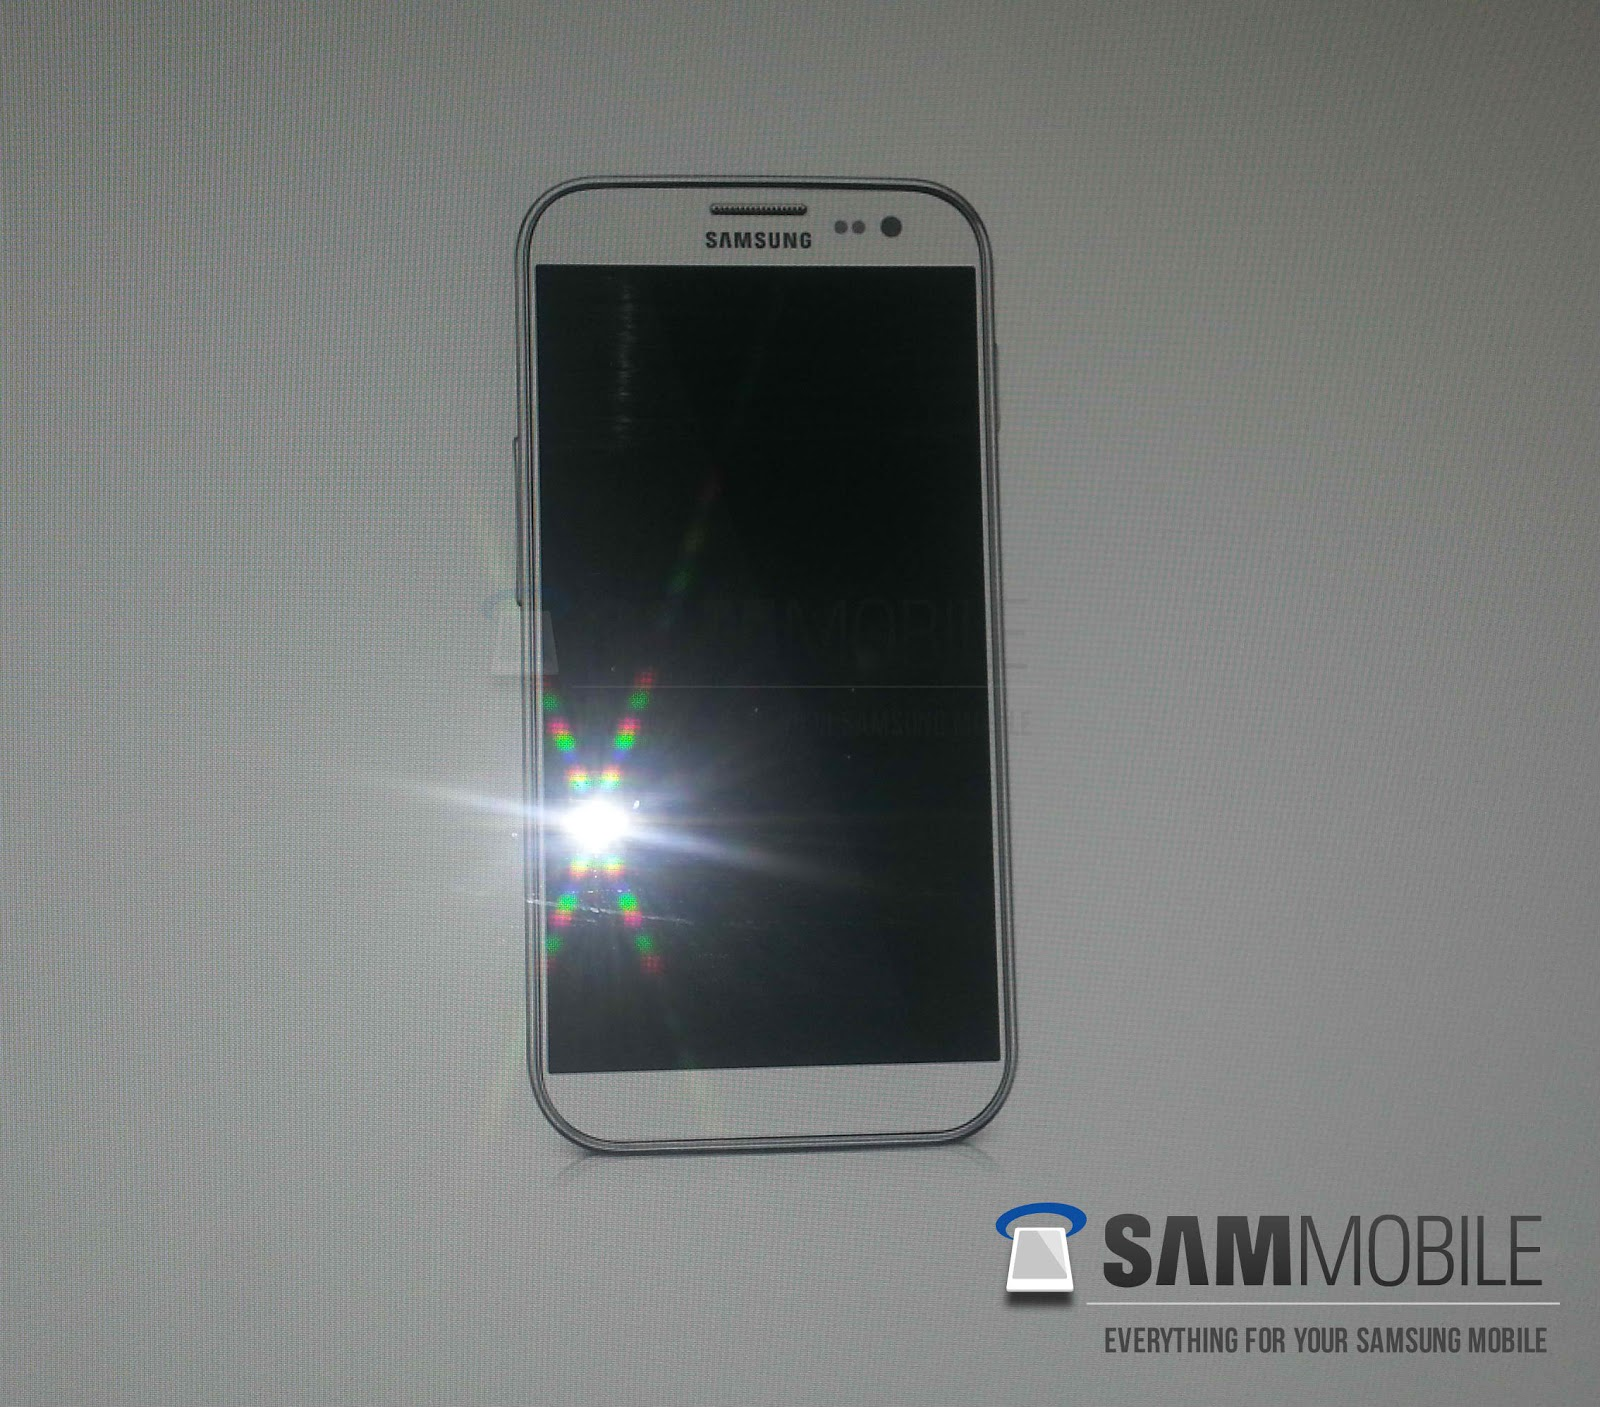 Samsung Galaxy S4 specs, price and release date ...